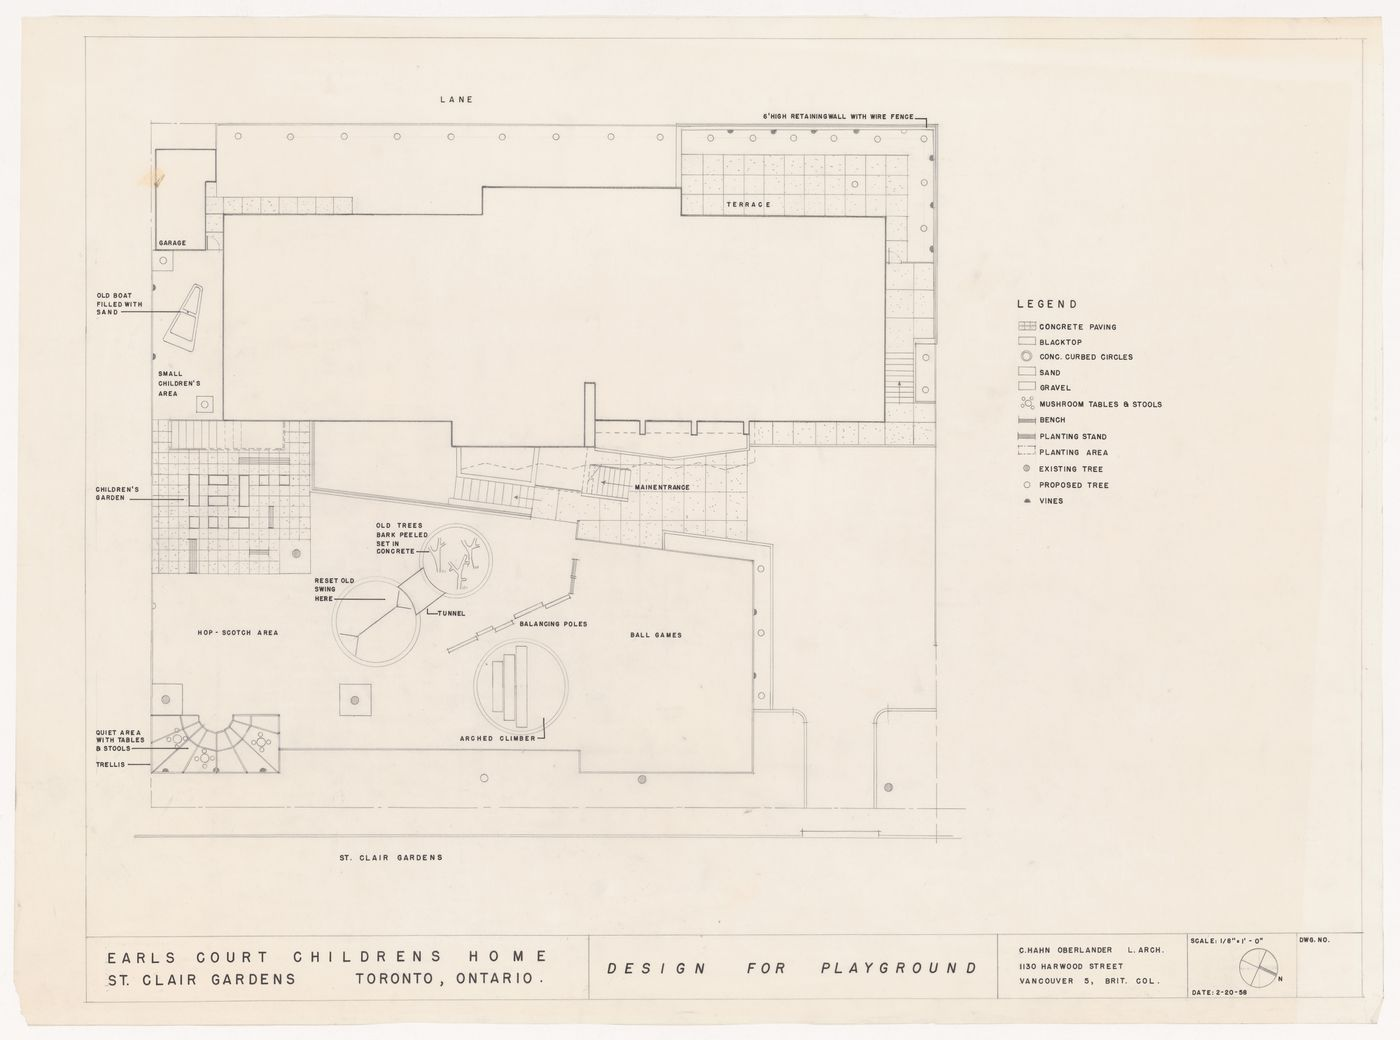 Plan for Earl's Court Children's Home, St. Clair Gardens, Vancouver, British Columbia